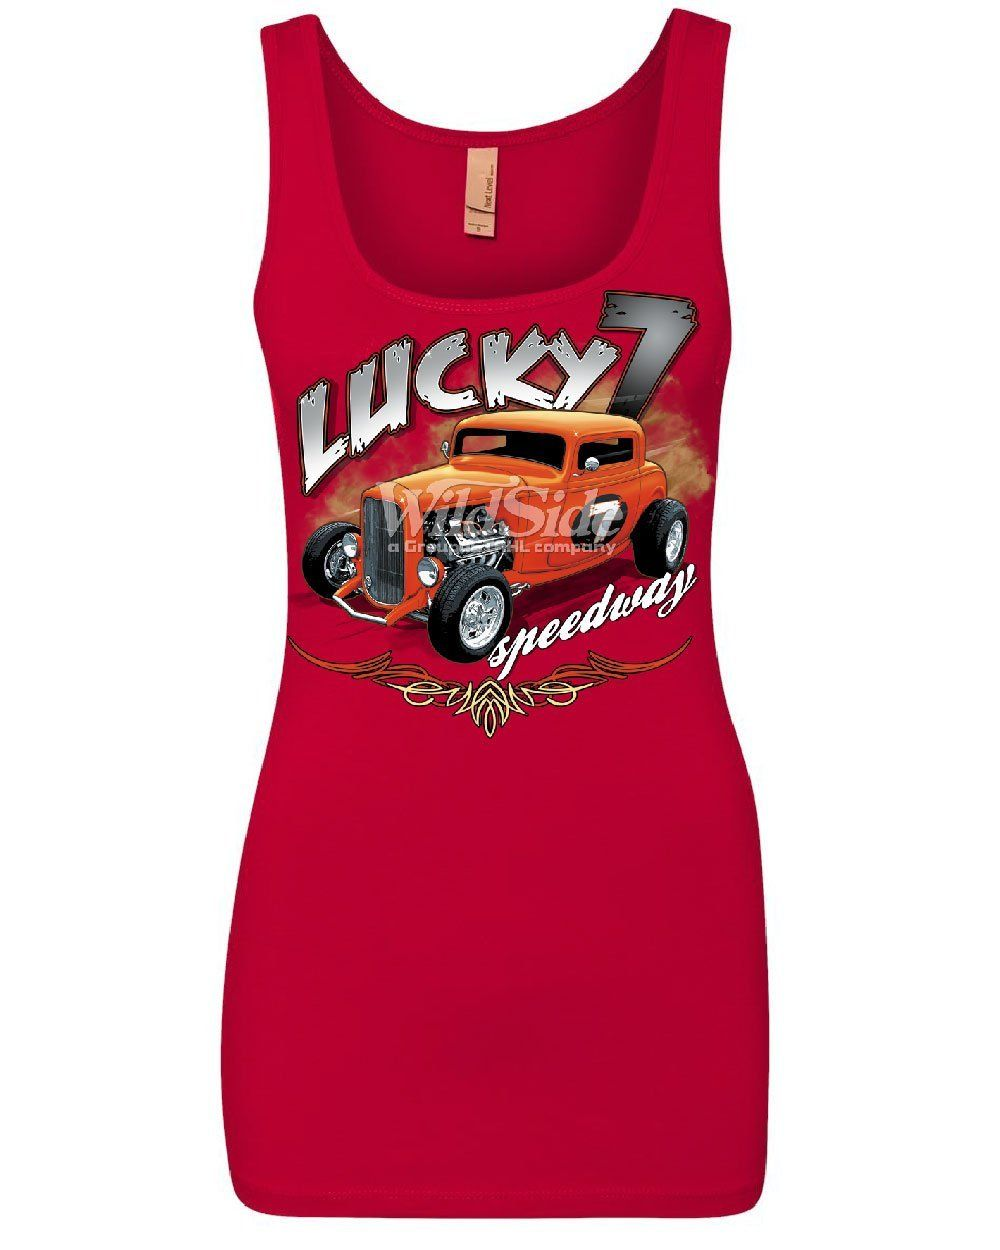 Lucky 7 Hot Rod Sweatshirt Speedway American Classic Cars Route 66 Sweater